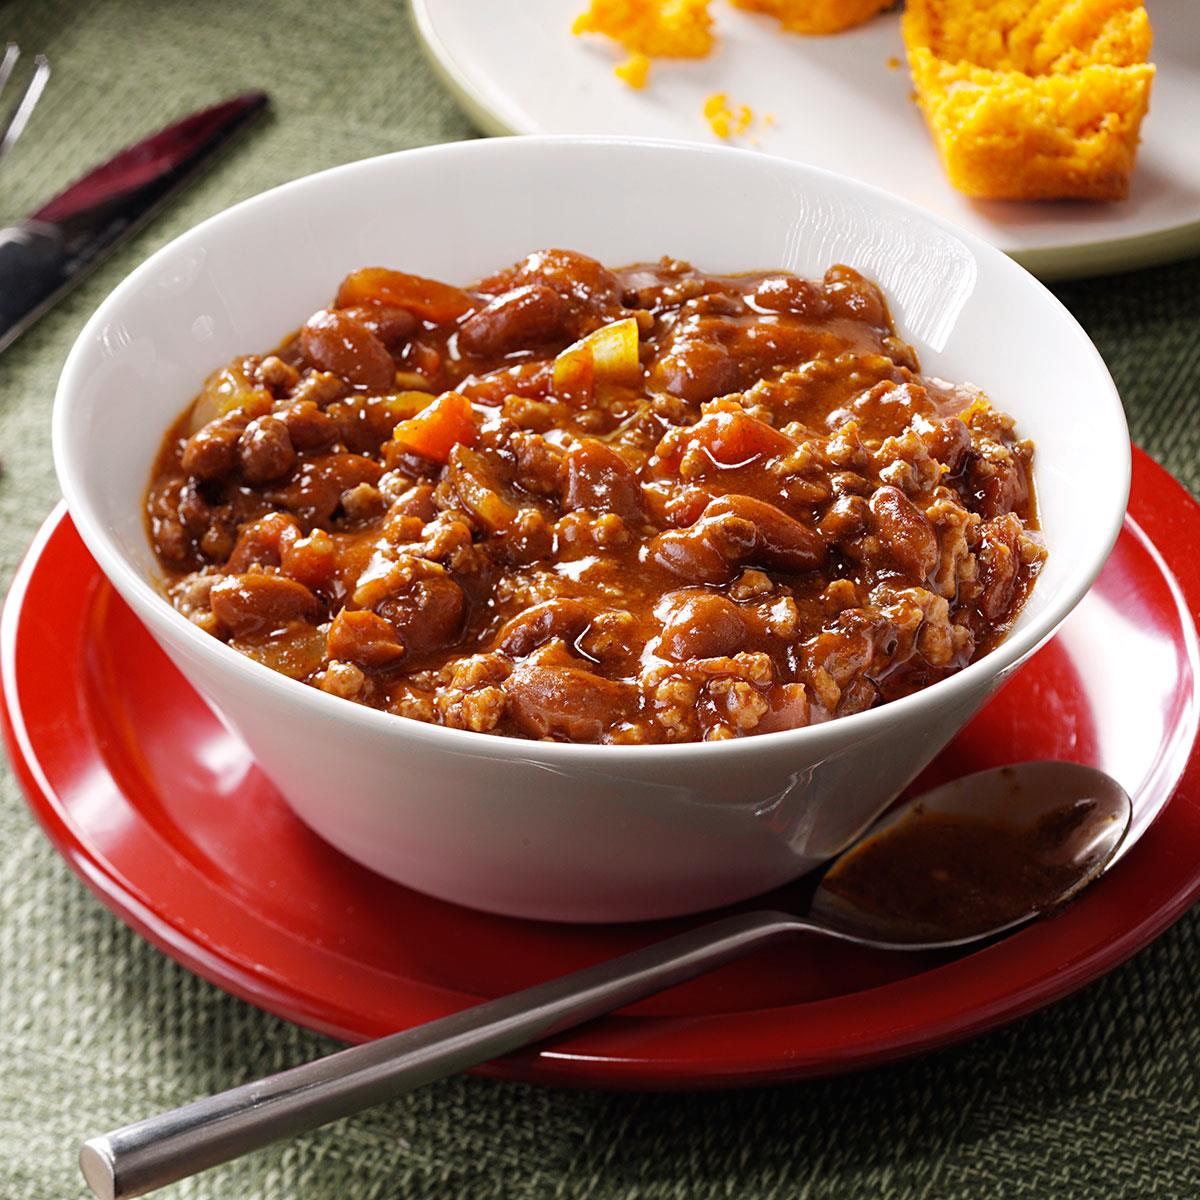 Beans with meat: recipes. Beans with meat in a slow cooker 36